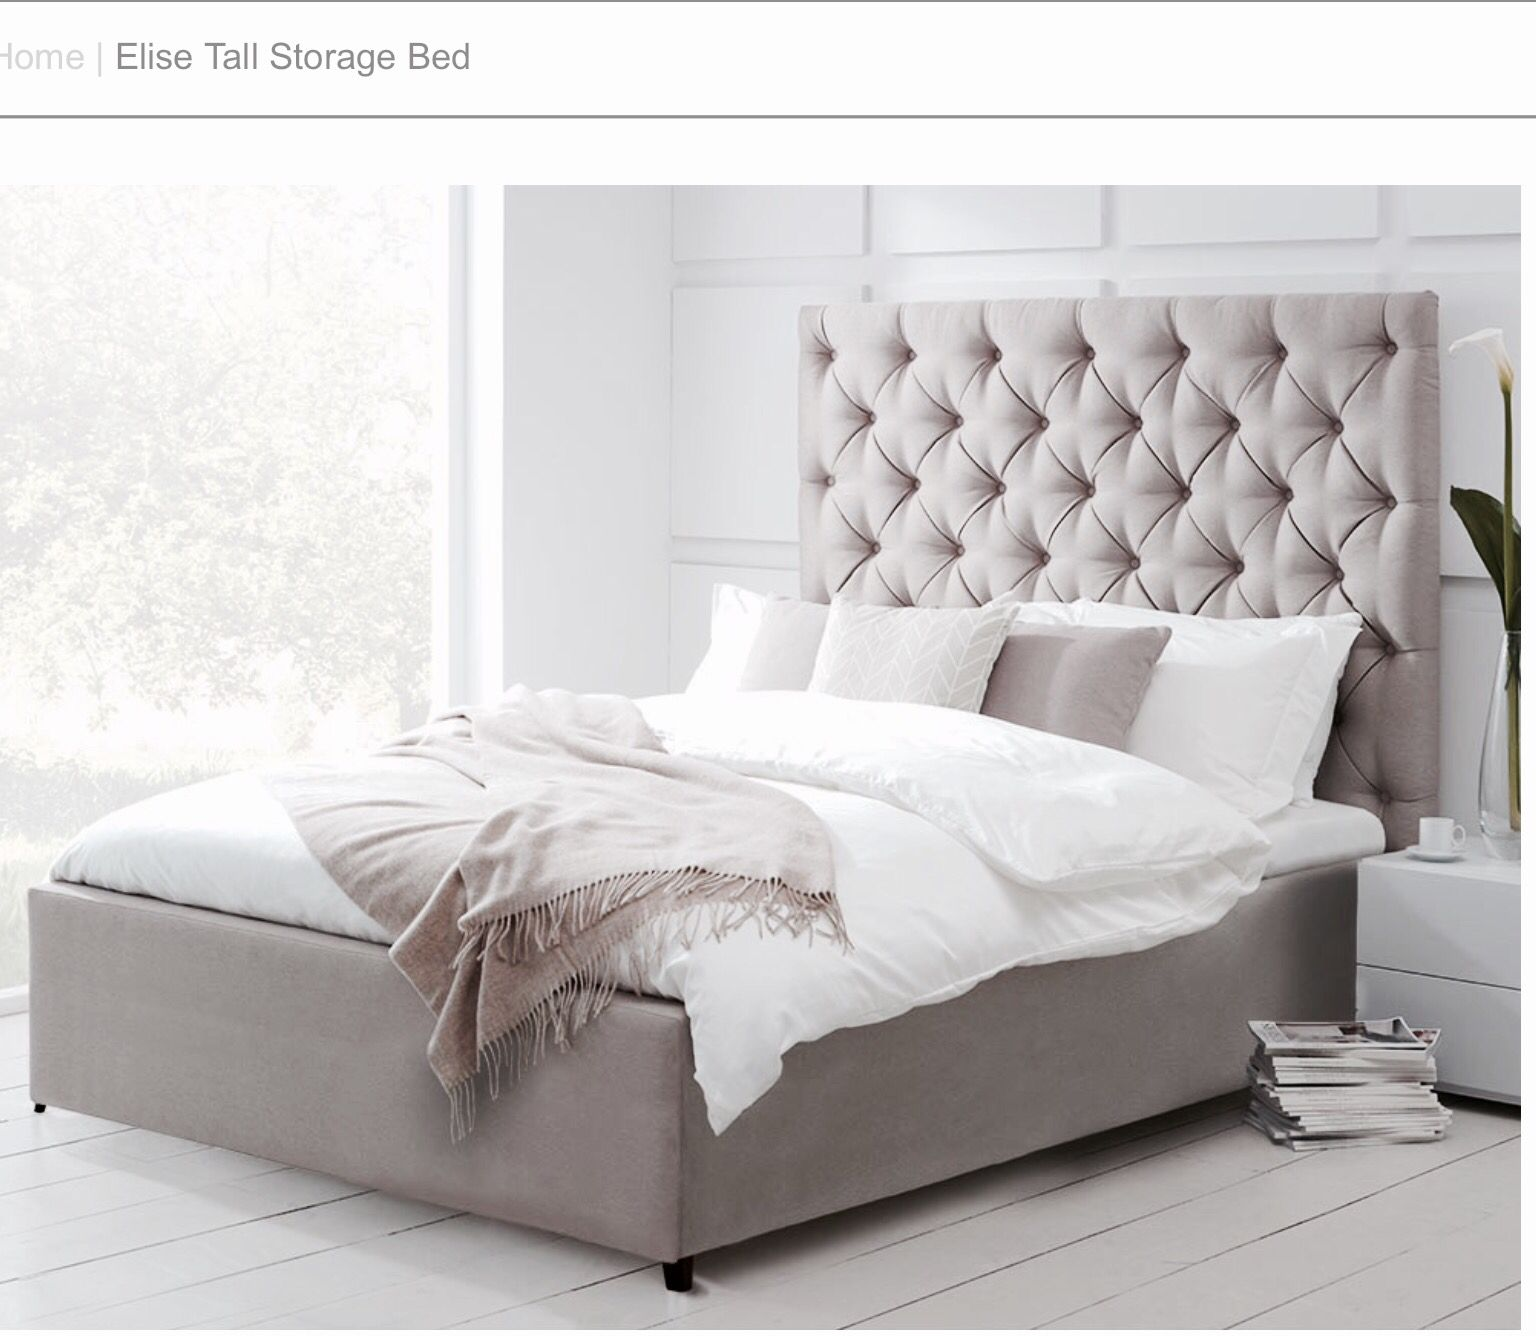 Elise Tall Storage Bed - Living it up Upholstered in Platinum grey ...